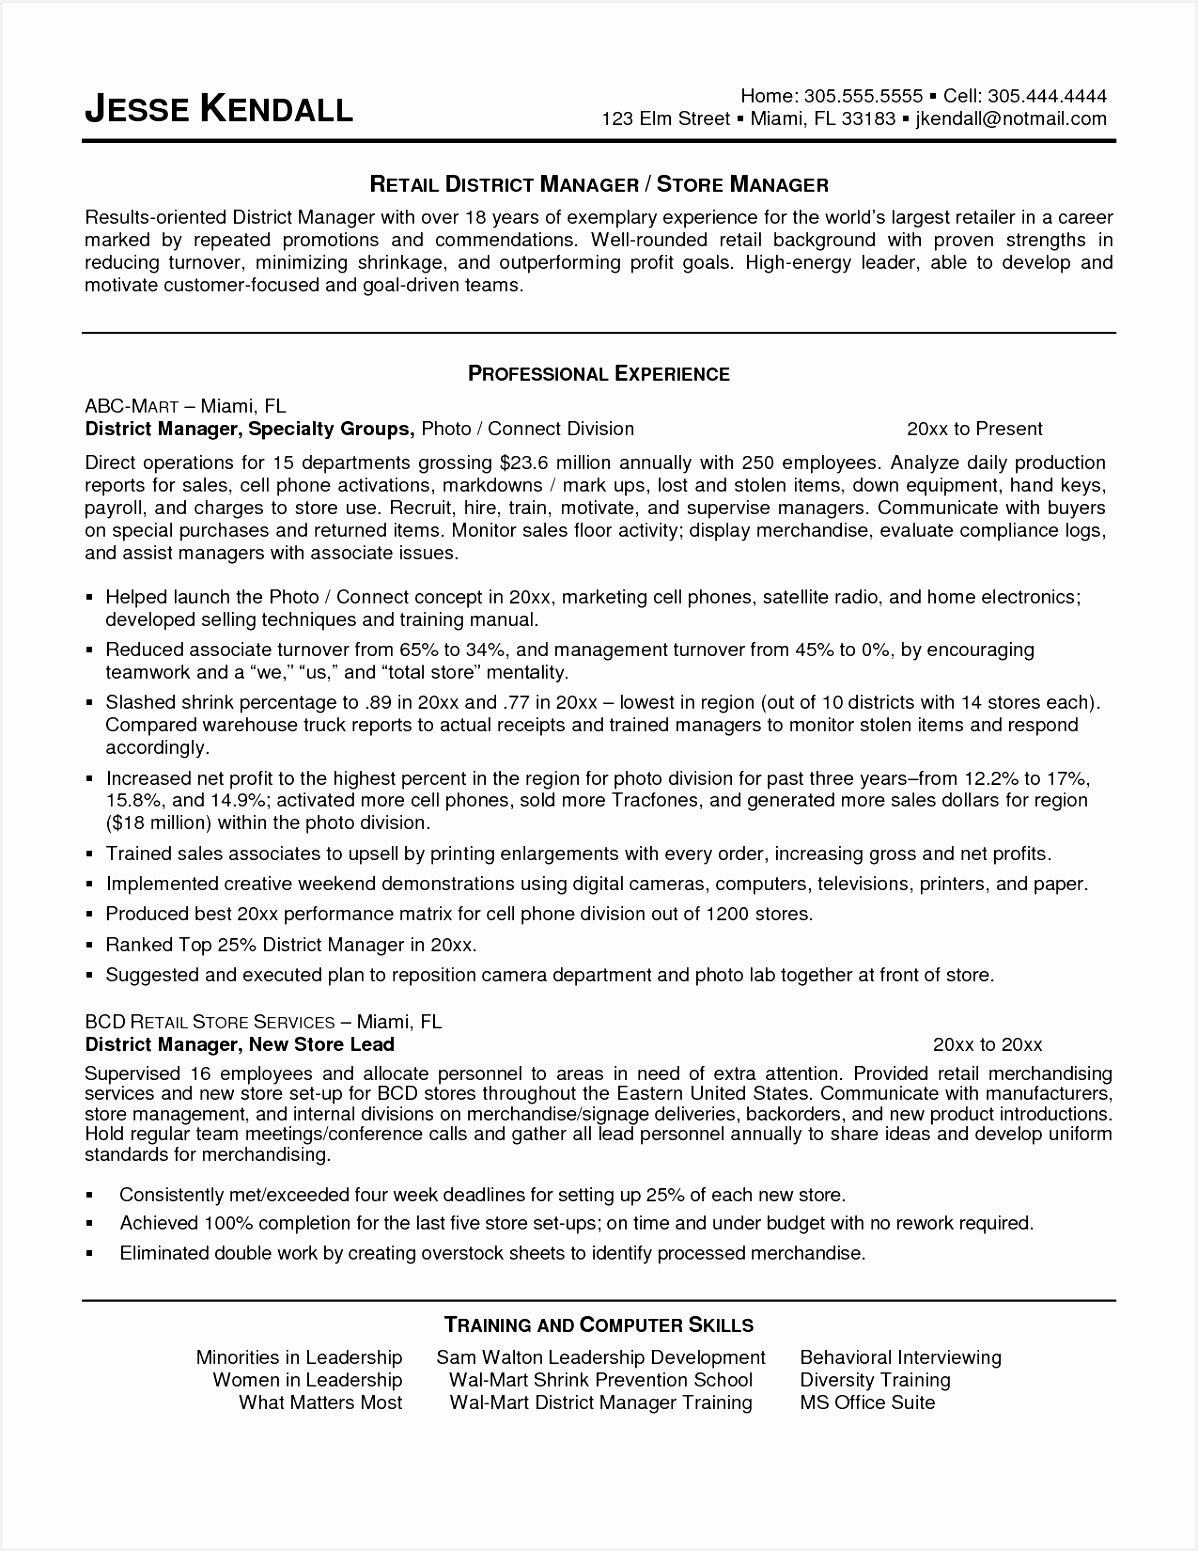 Microsoft Trainer Sample Resume Fsadg Beautiful Retail Resume Template Microsoft Word Fresh Retail Resume Sample Of Microsoft Trainer Sample Resume Dcwig Elegant 53 Elegant Microsoft Word Free Resume Templates Awesome Resume